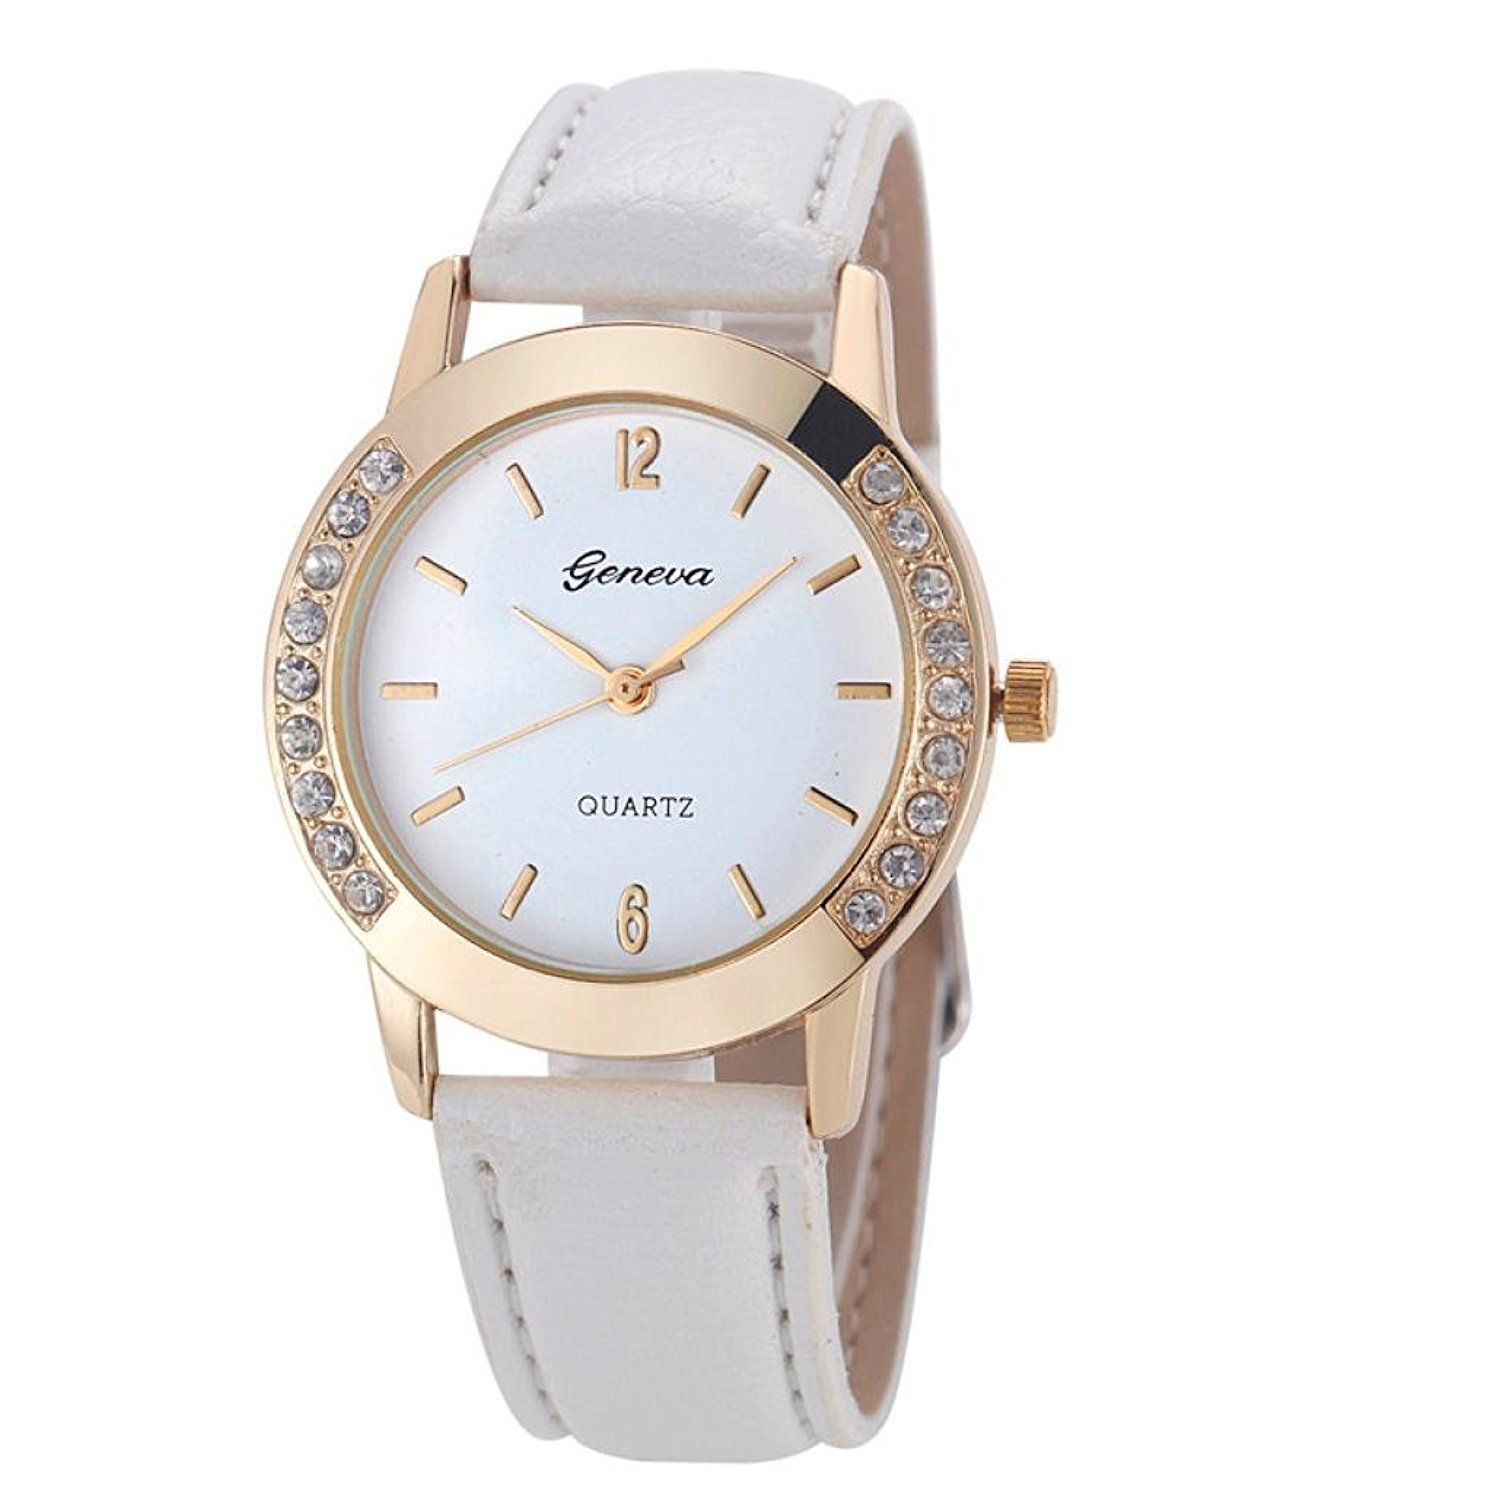 Hemlock Round Women s Crystal Diamond Watches White PU Leather Band Gold  Watches   Remarkable product available. Relojes MujerRelojes ... cba8715f4f68